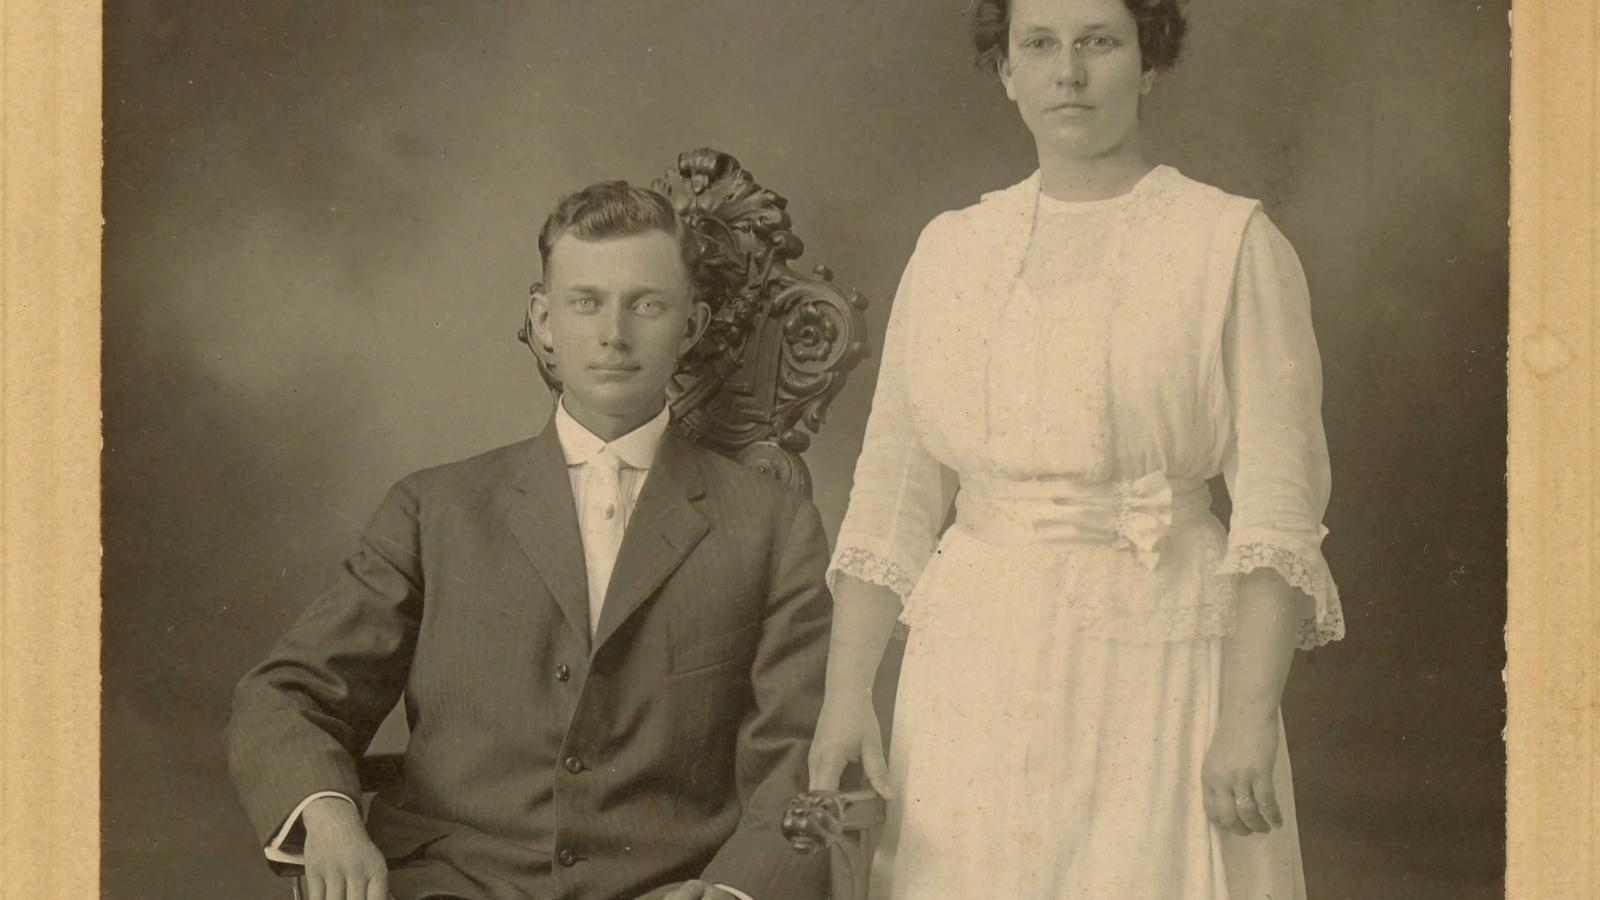 Jacob Lapp (left) and Lenora Hammond (right) in a photograph taken during their courtship (c. 1913).